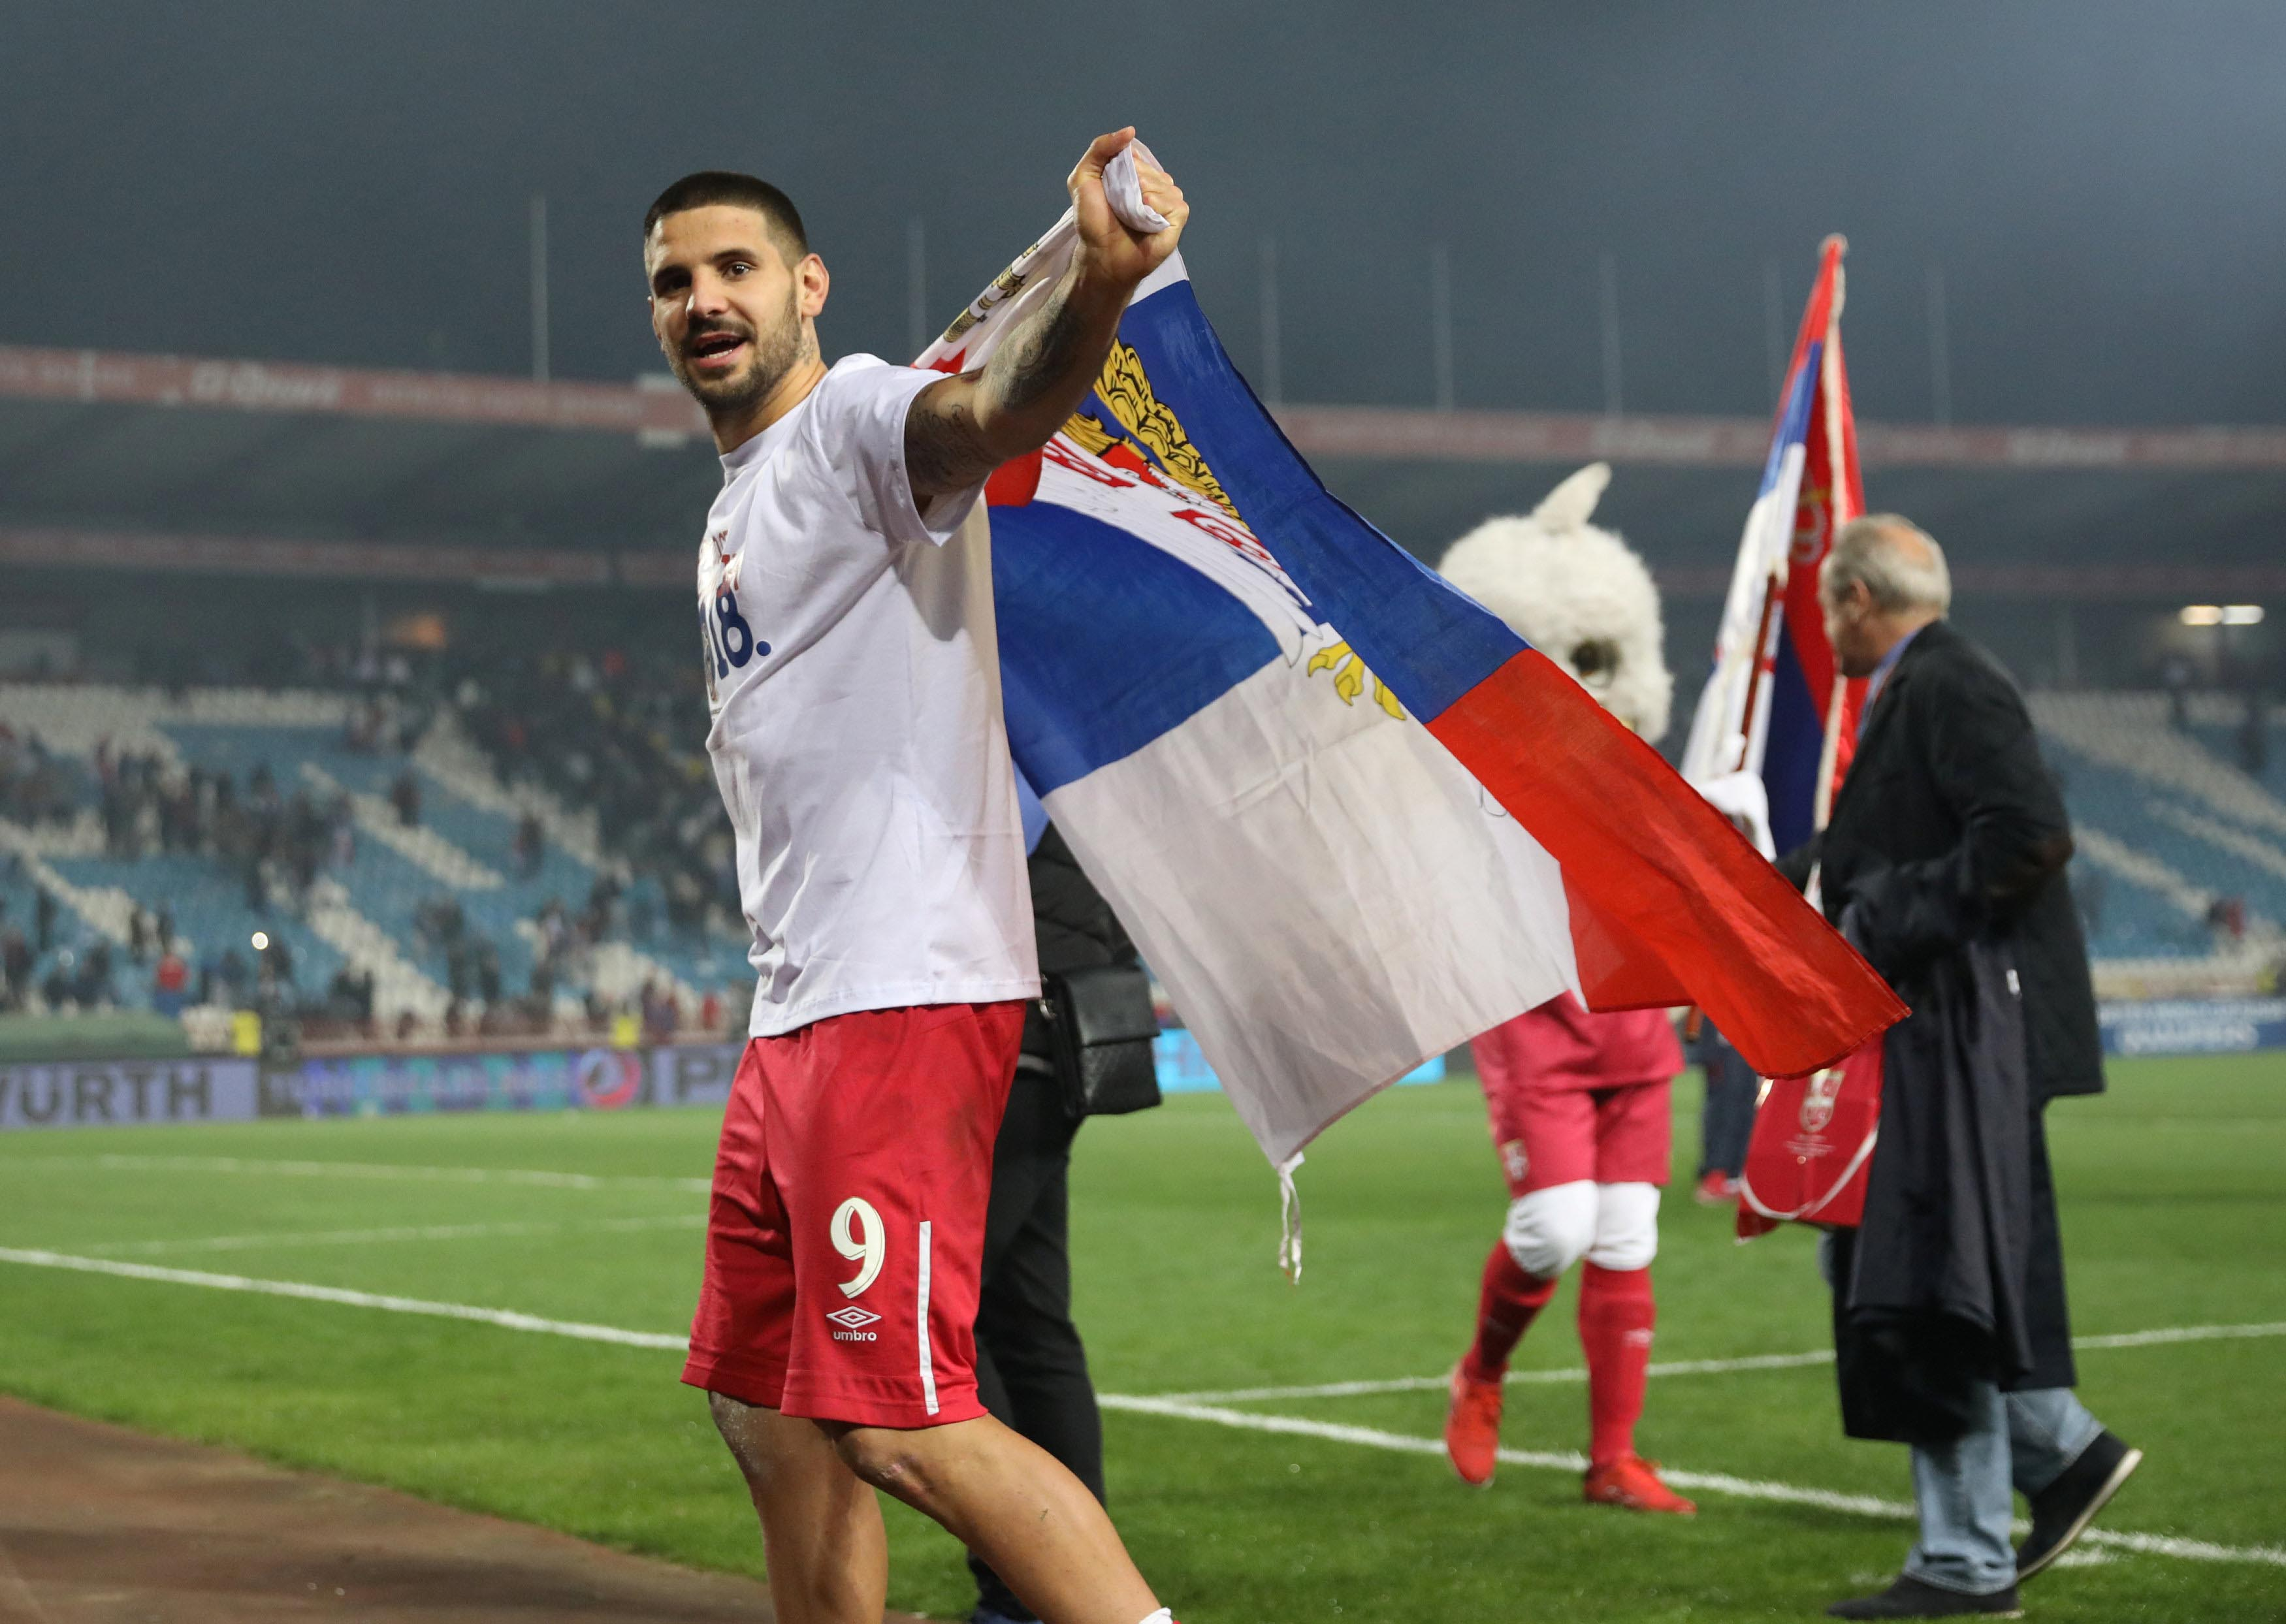 Serbiau2019s Aleksandar Mitrovic celebrates World Cup qualification after the2018 World Cup Europe Qualification match between Serbia and Georgia, at Rajko Mitic Stadium, in Belgrade, Serbia, on October 9, 2017. Photo: Reuters